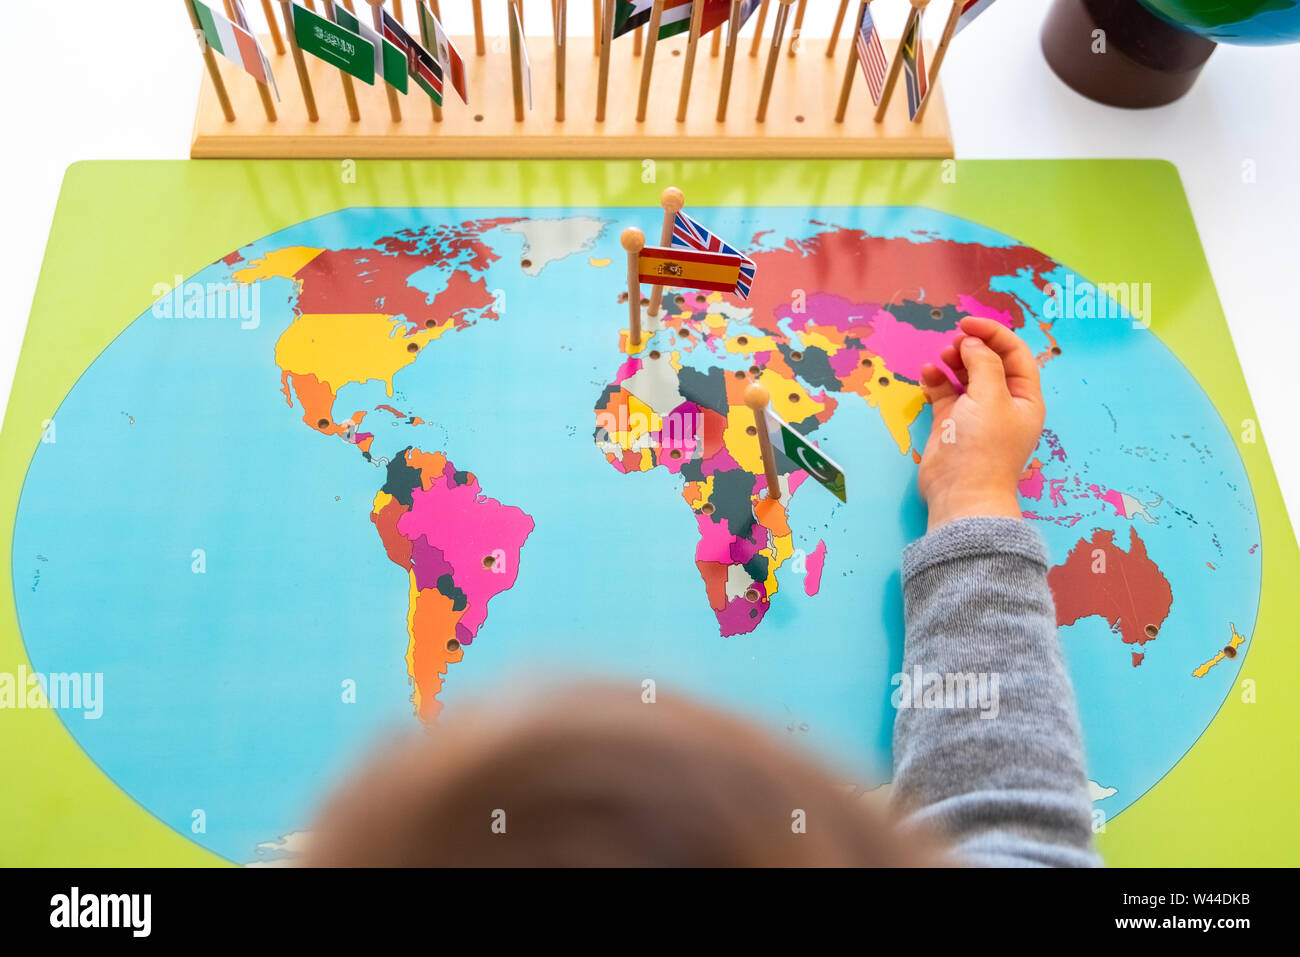 Map Of Spain For Children.Geography Exercise For Children Place Flags Of Countries On A Map